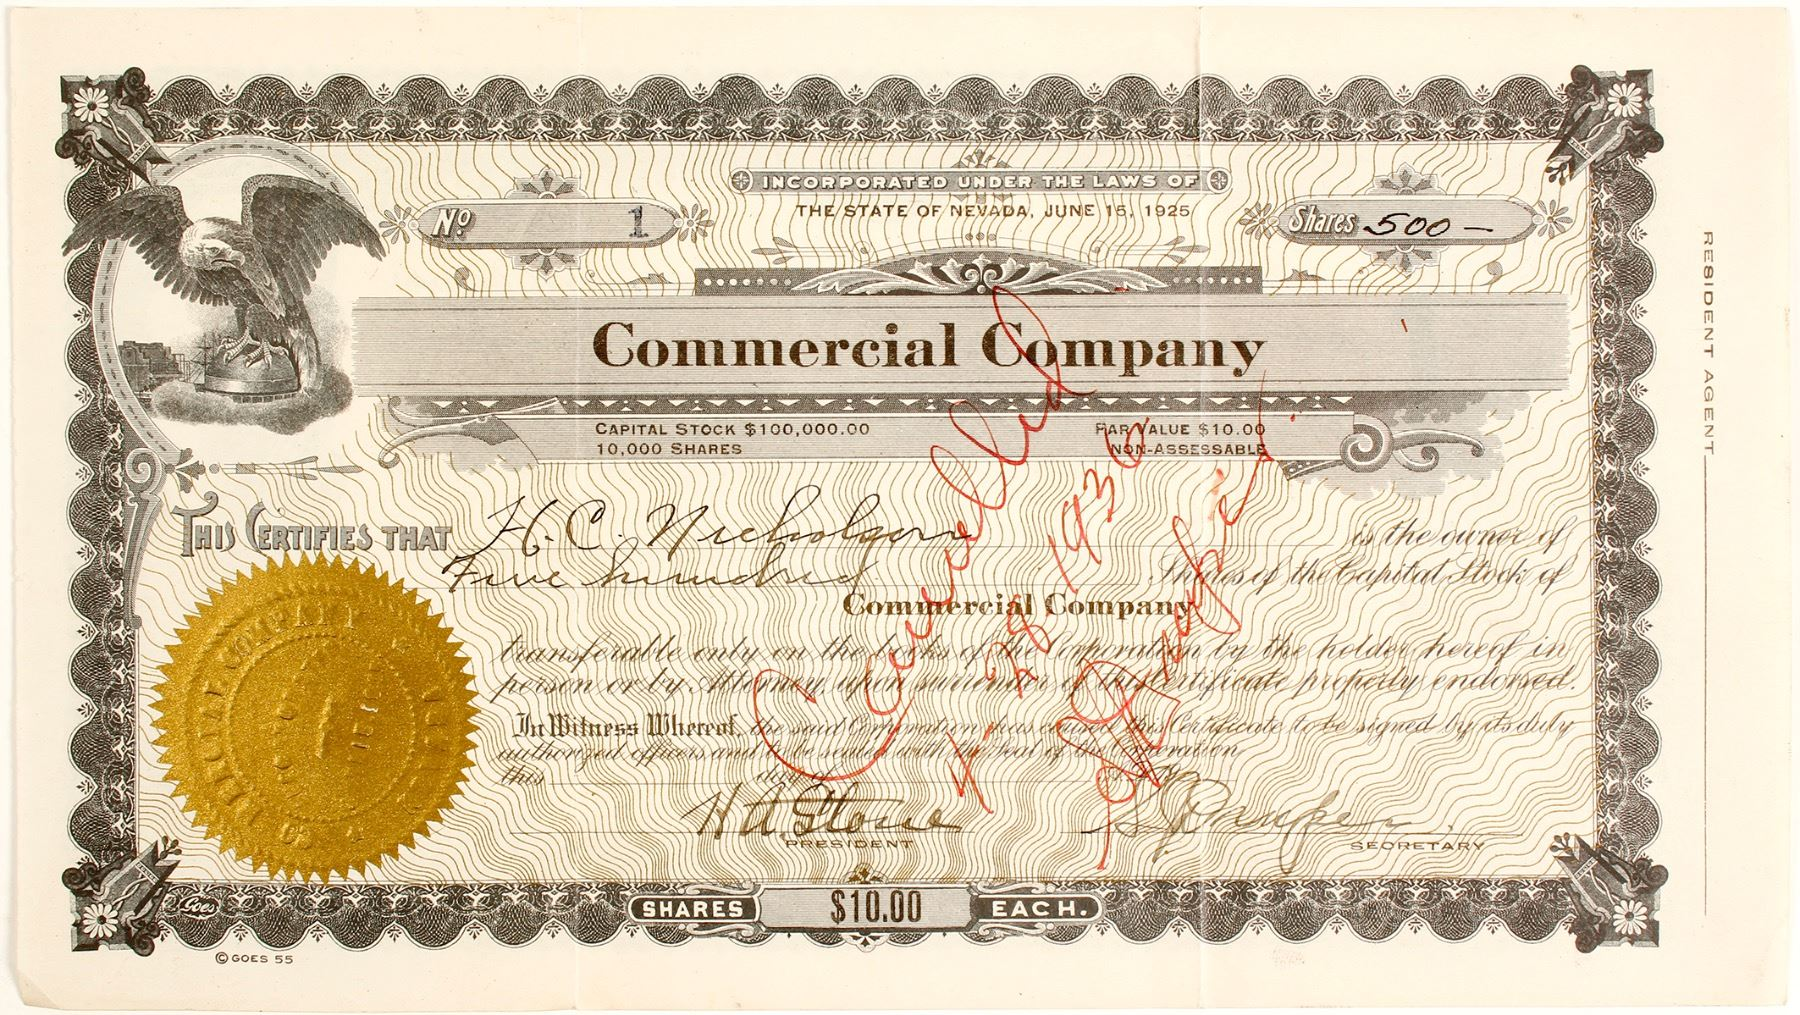 Commercial Company Mcgillnv Stock Certificate 1